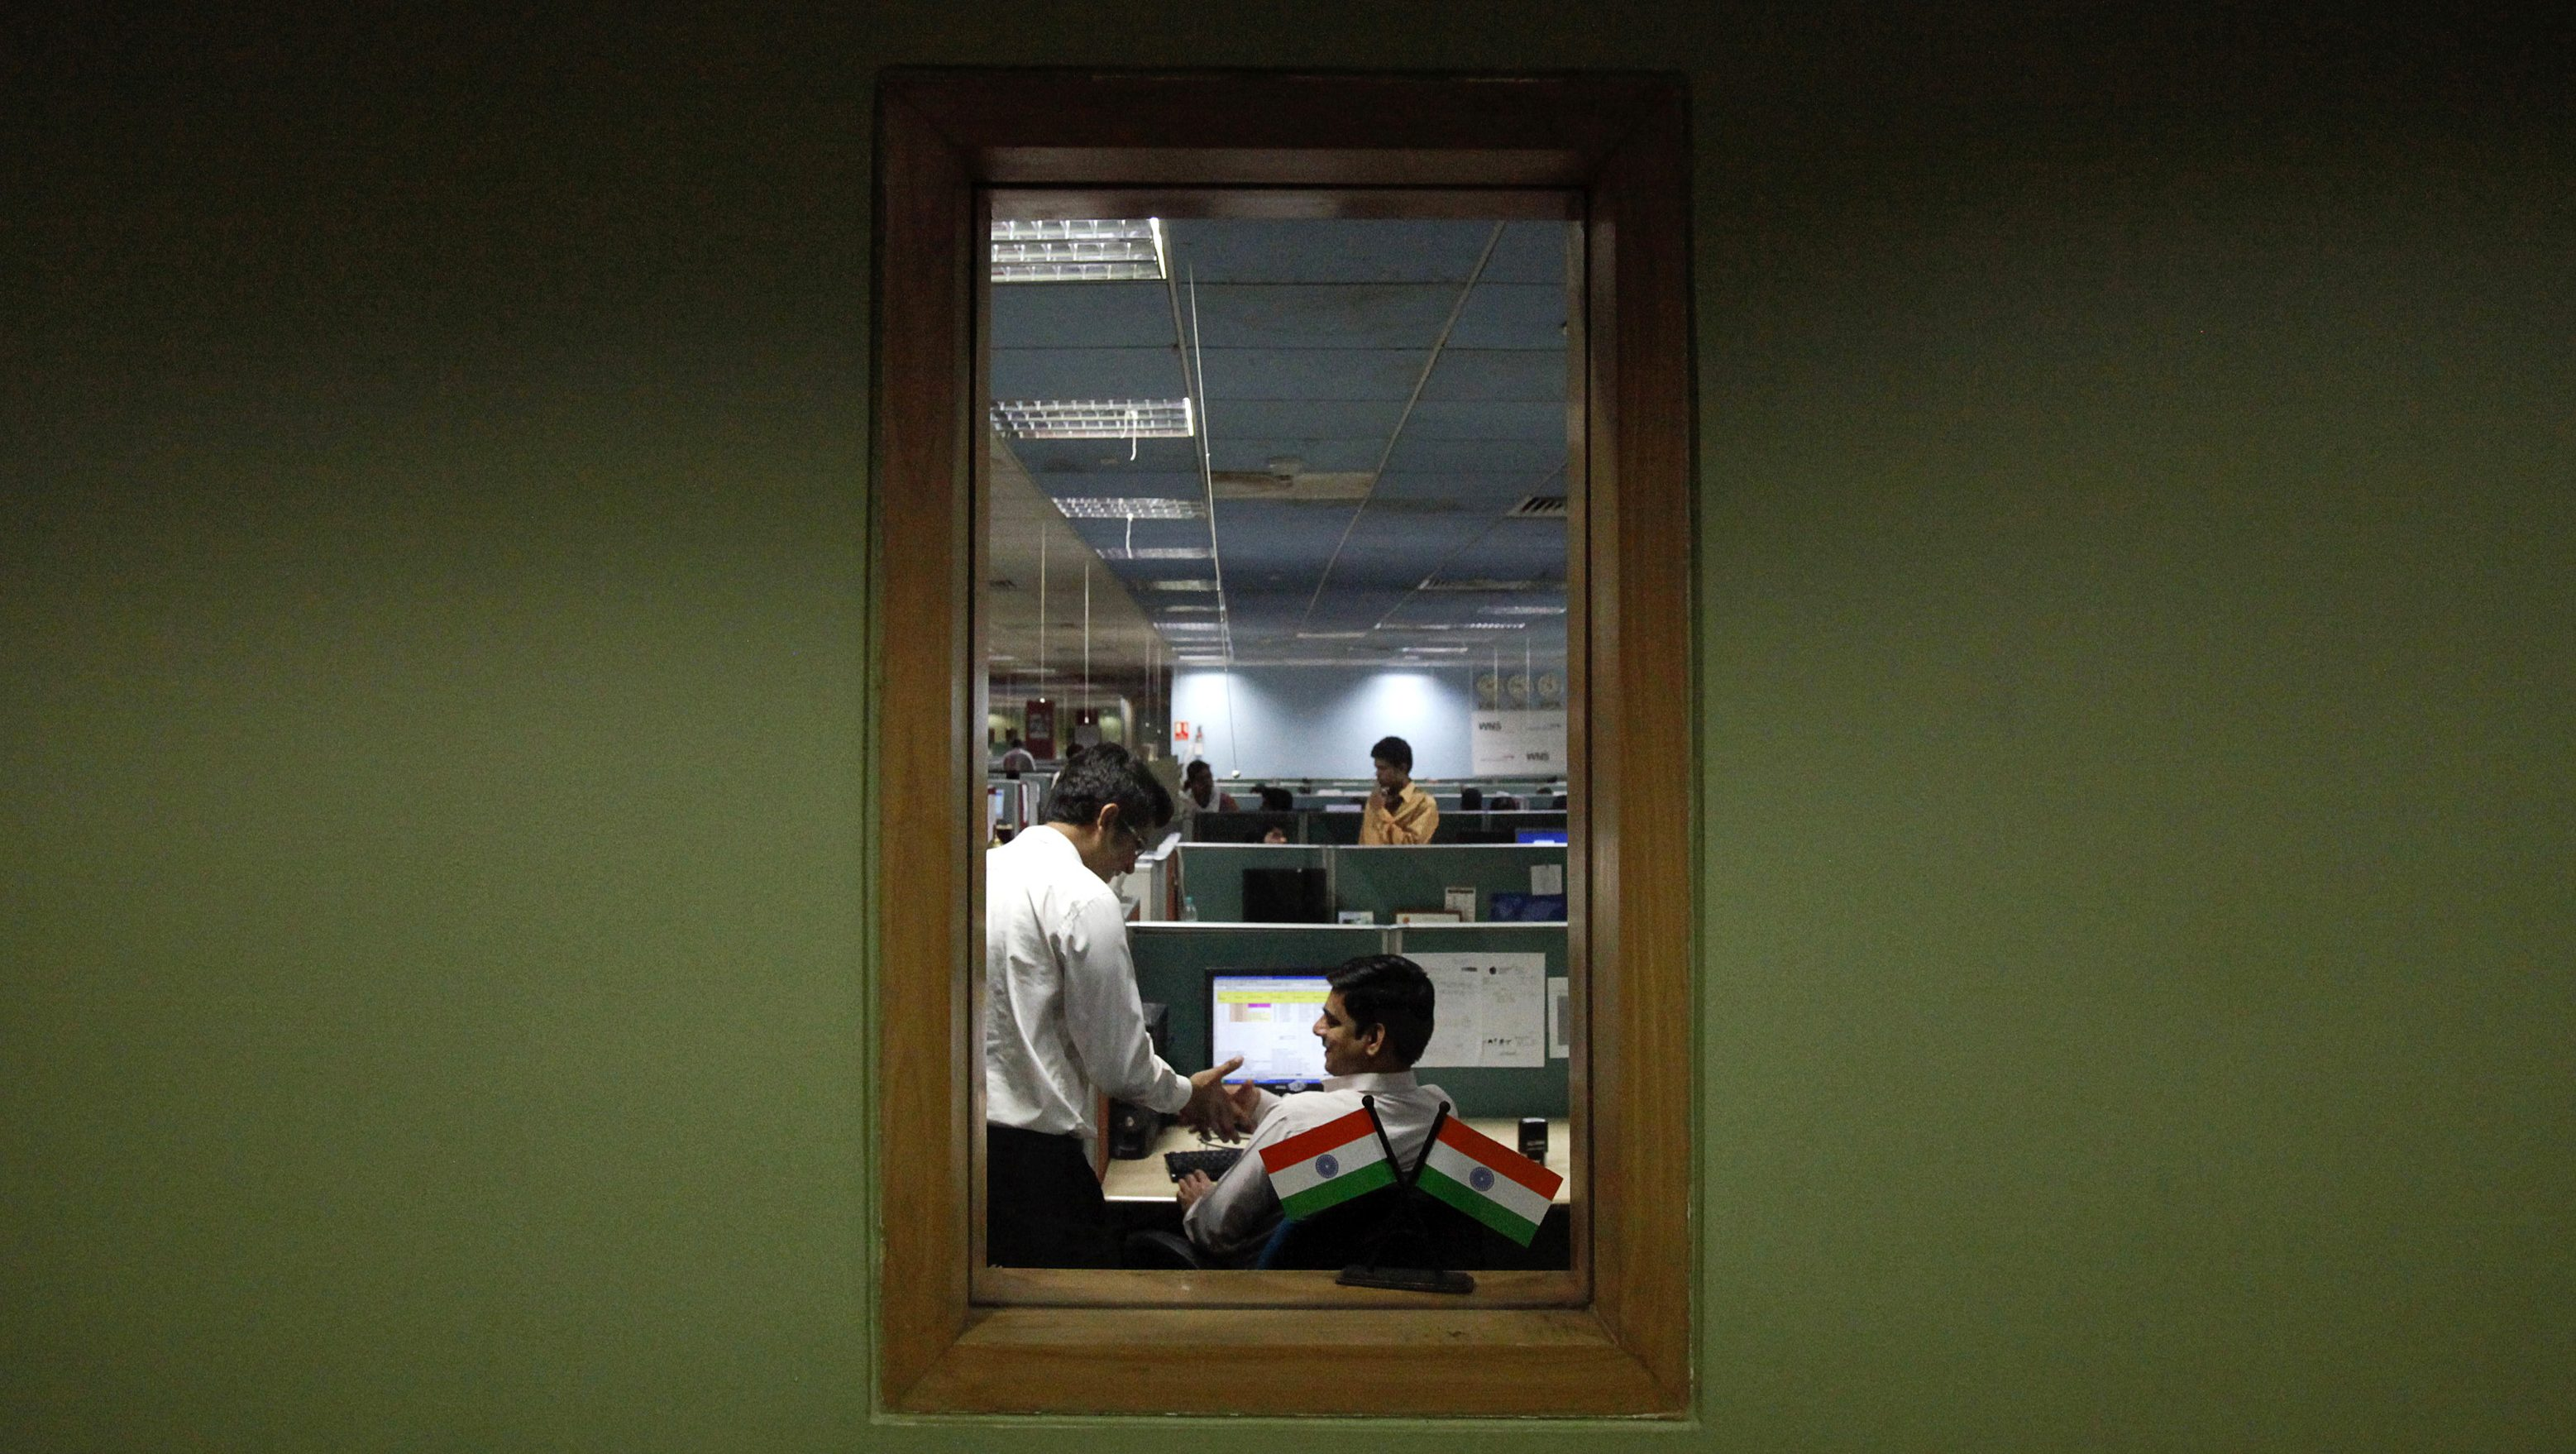 Employees are pictured through a window as they work on the floor of the outsourcing company WNS in Mumbai March 19, 2012. Indian back-office company WNS Holdings Ltd may launch the first of three customer-service centres in the United States over the next quarter, its CEO Keshav Murugesh said, as it looks to boost revenues in its second largest market. REUTERS/Vivek Prakash (INDIA - Tags: BUSINESS EMPLOYMENT) - RTR2ZKTH